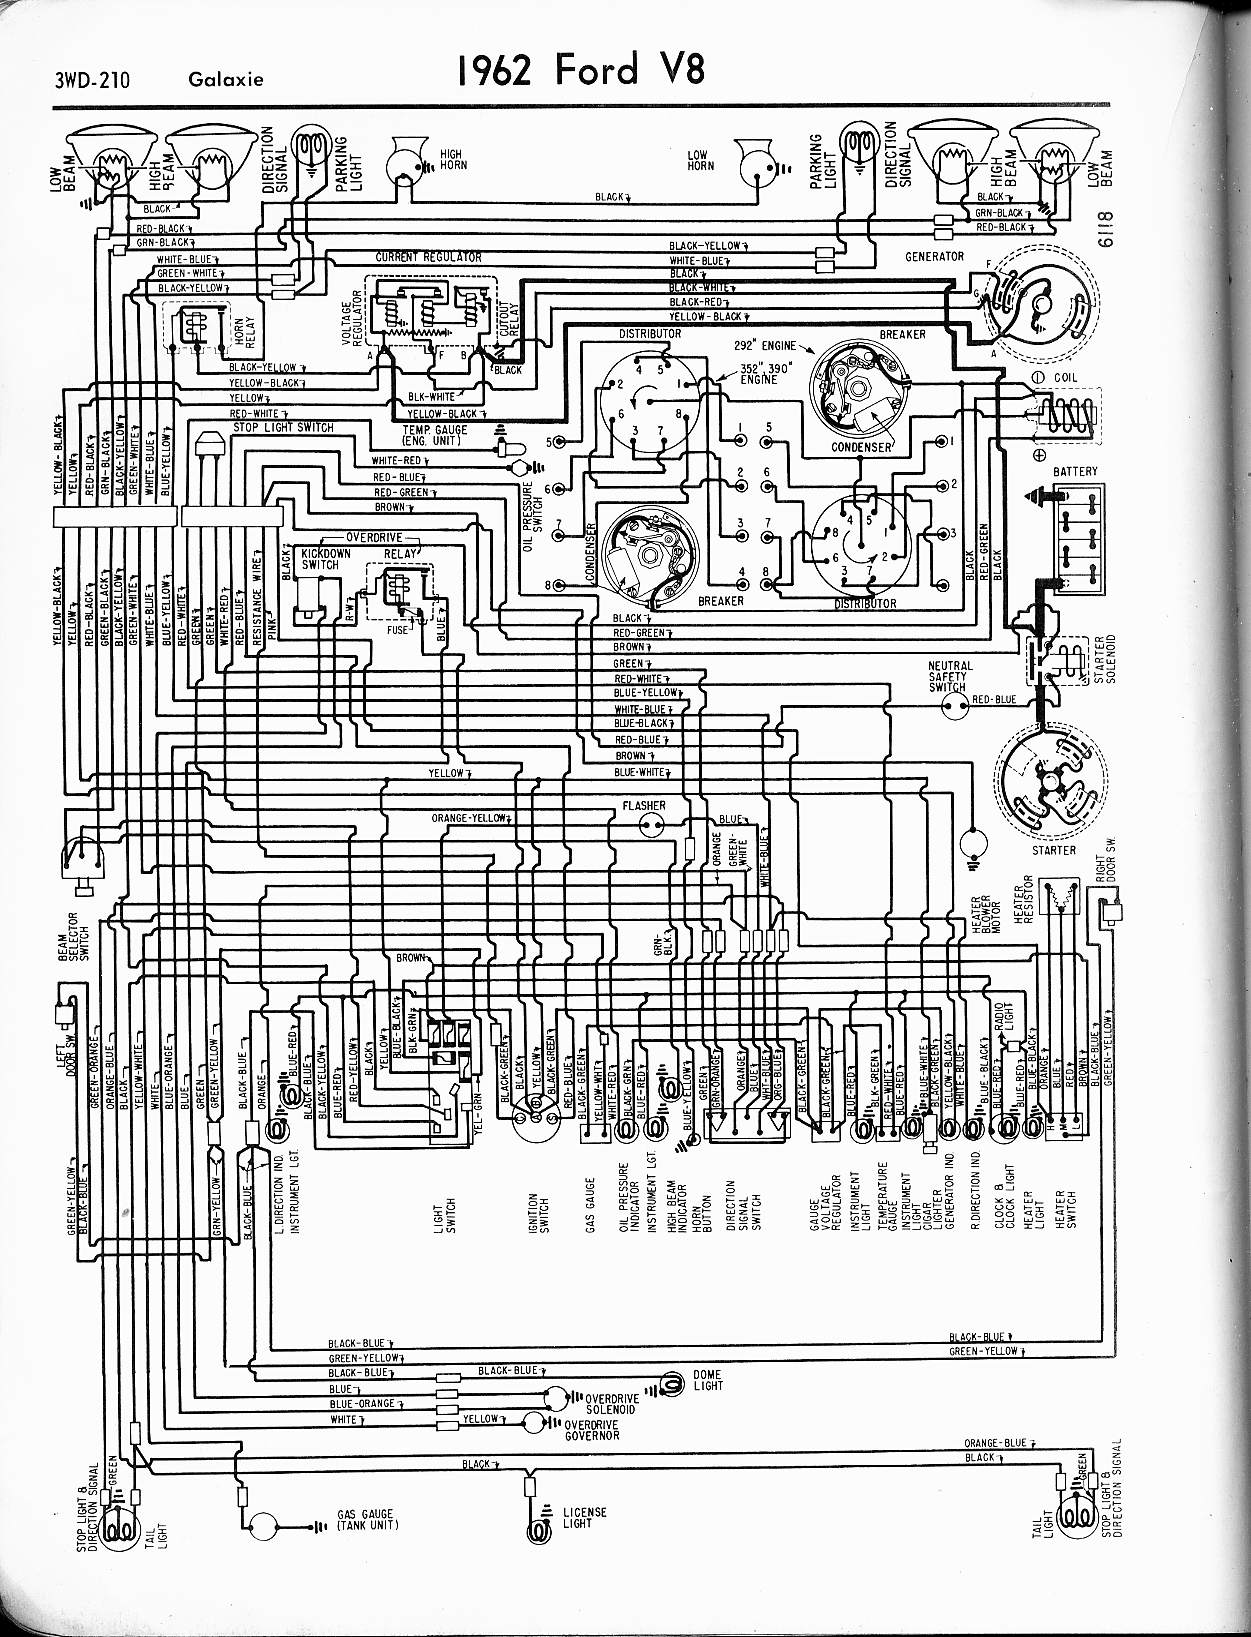 1970 Ford F100 Dash Wiring Diagram List Of Schematic Circuit Powerwinch 1960 Truck Reinvent Your U2022 Rh Kismetcars Co Uk